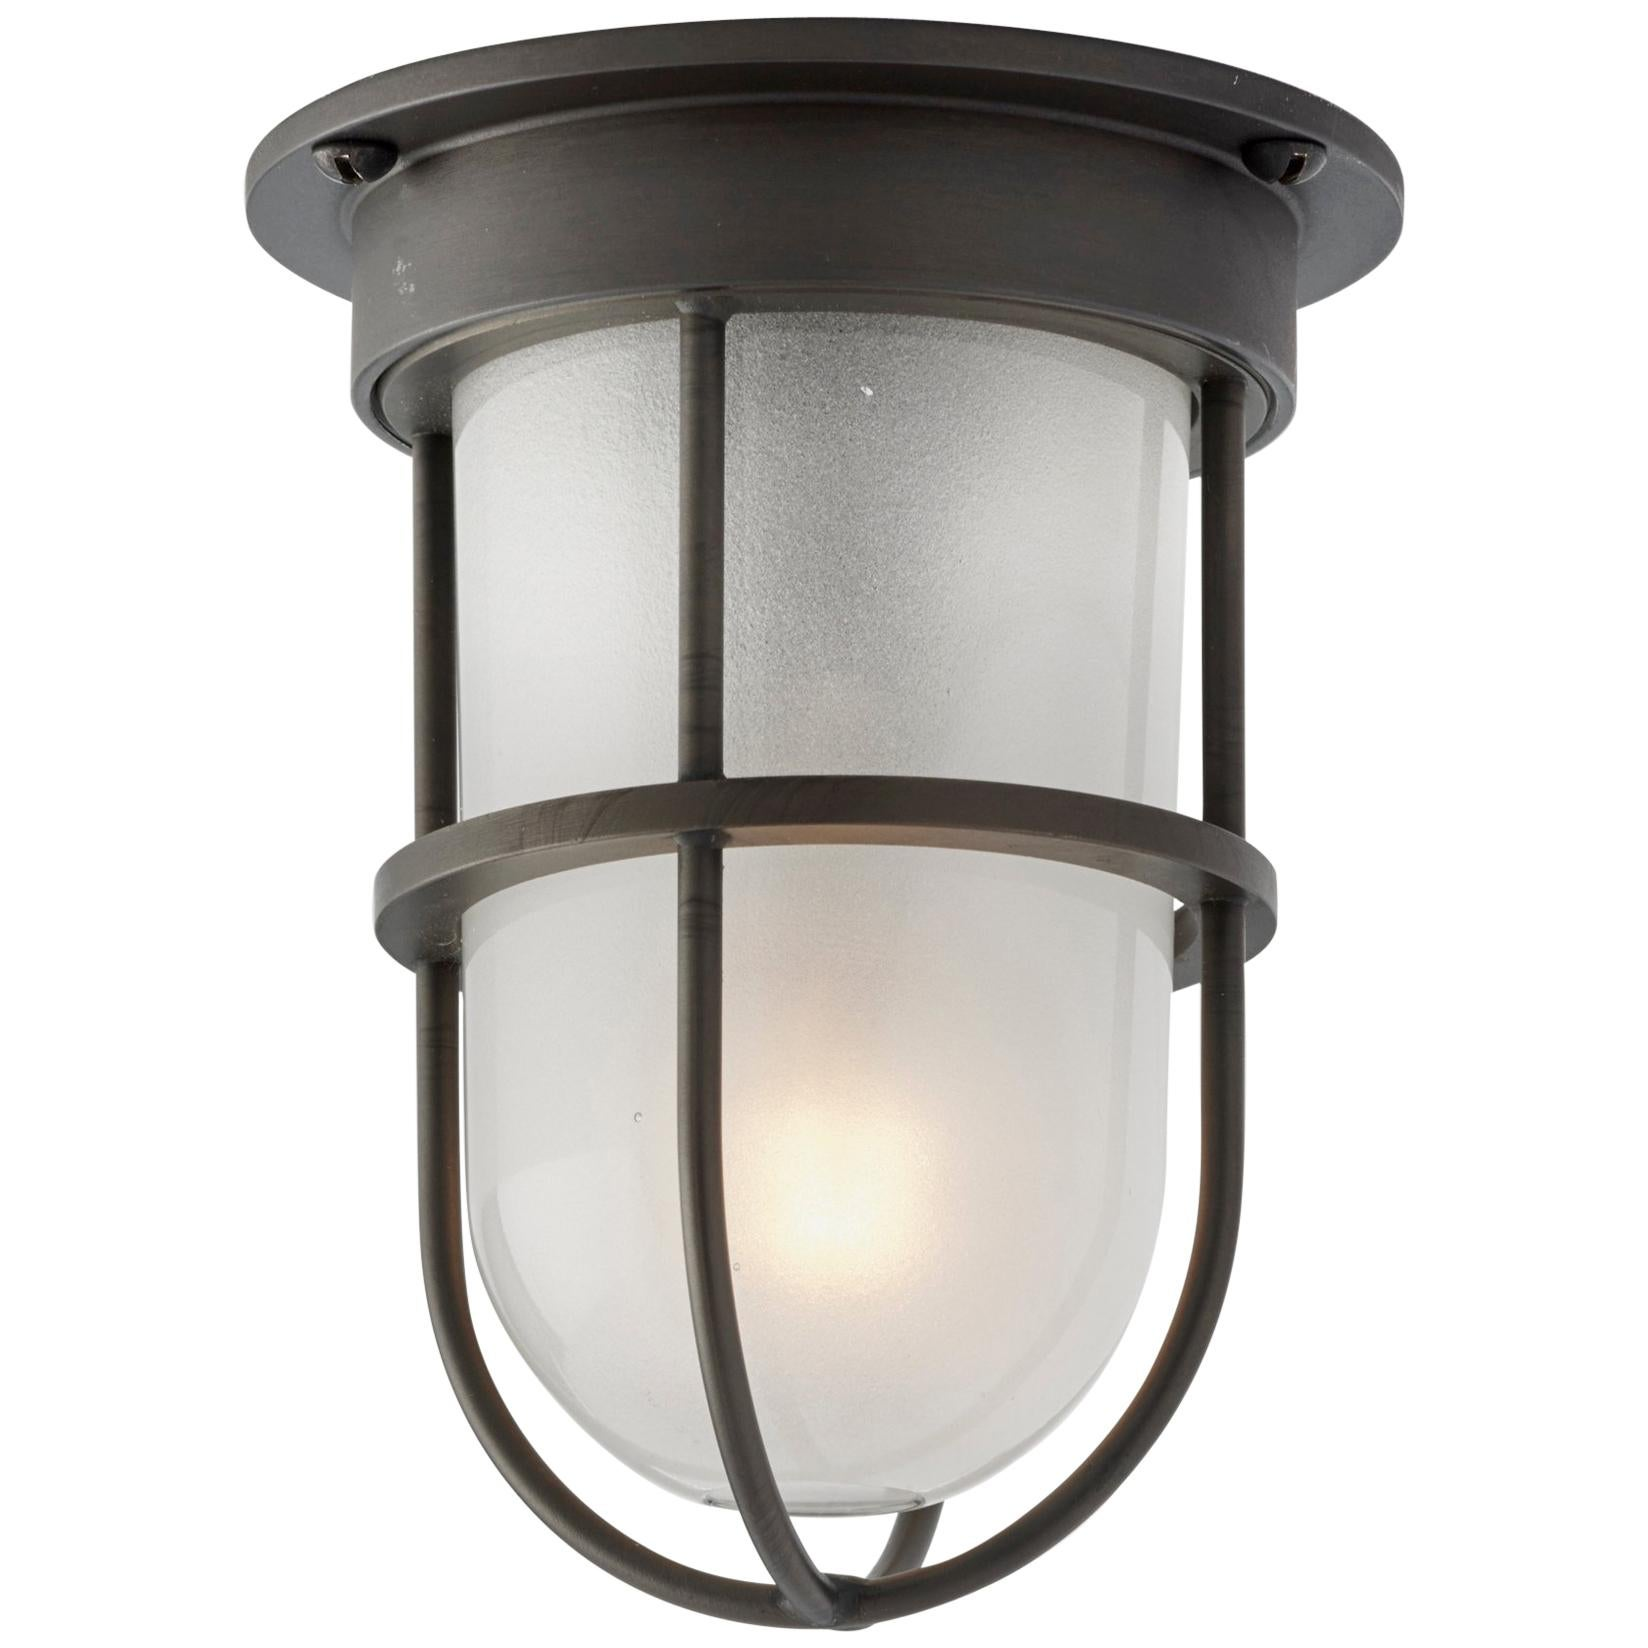 Tekna Bounty 230V LED Ceiling Light with Dark Bronze Finish and Frosted Glass